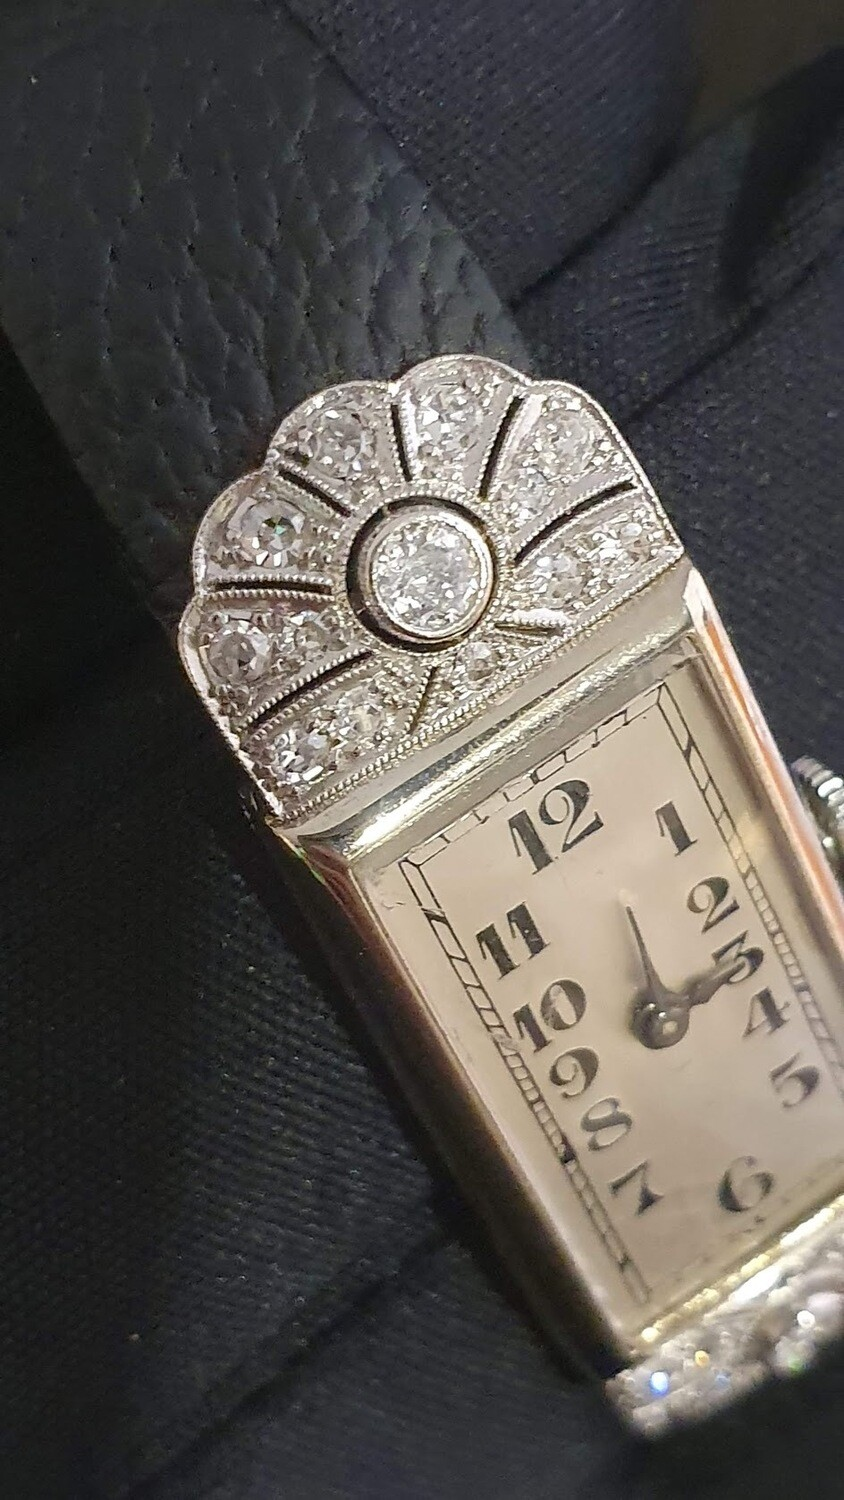 Montre mécanique dame de 1910.  26 diamants LONGINES vintage.